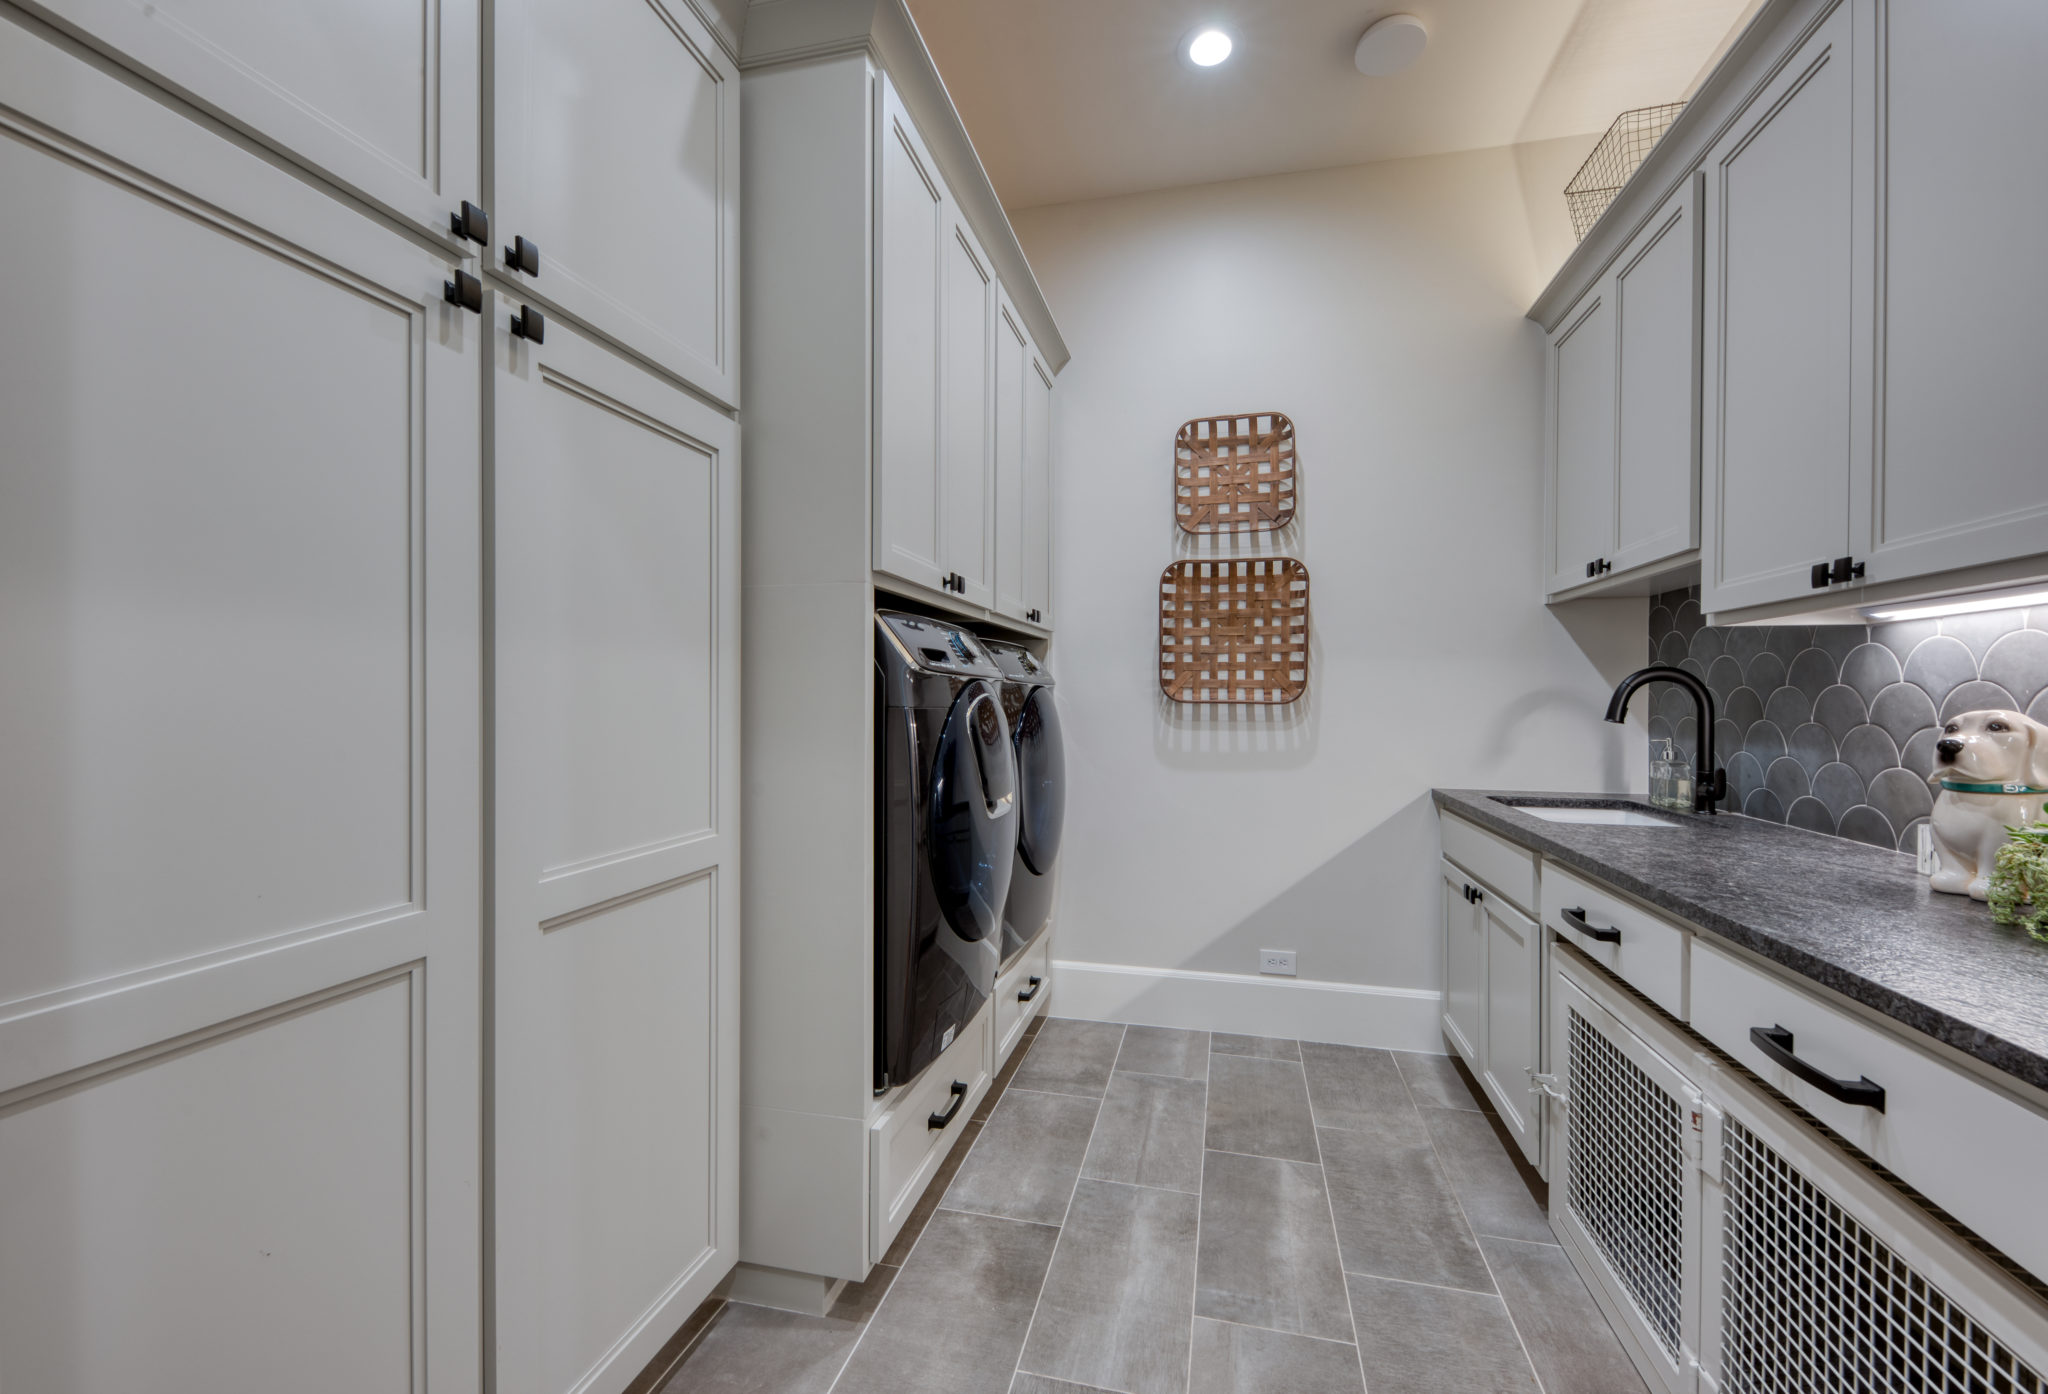 Luxury Home Laundry Room & Folding Counter South Central TX G. Morris Homes